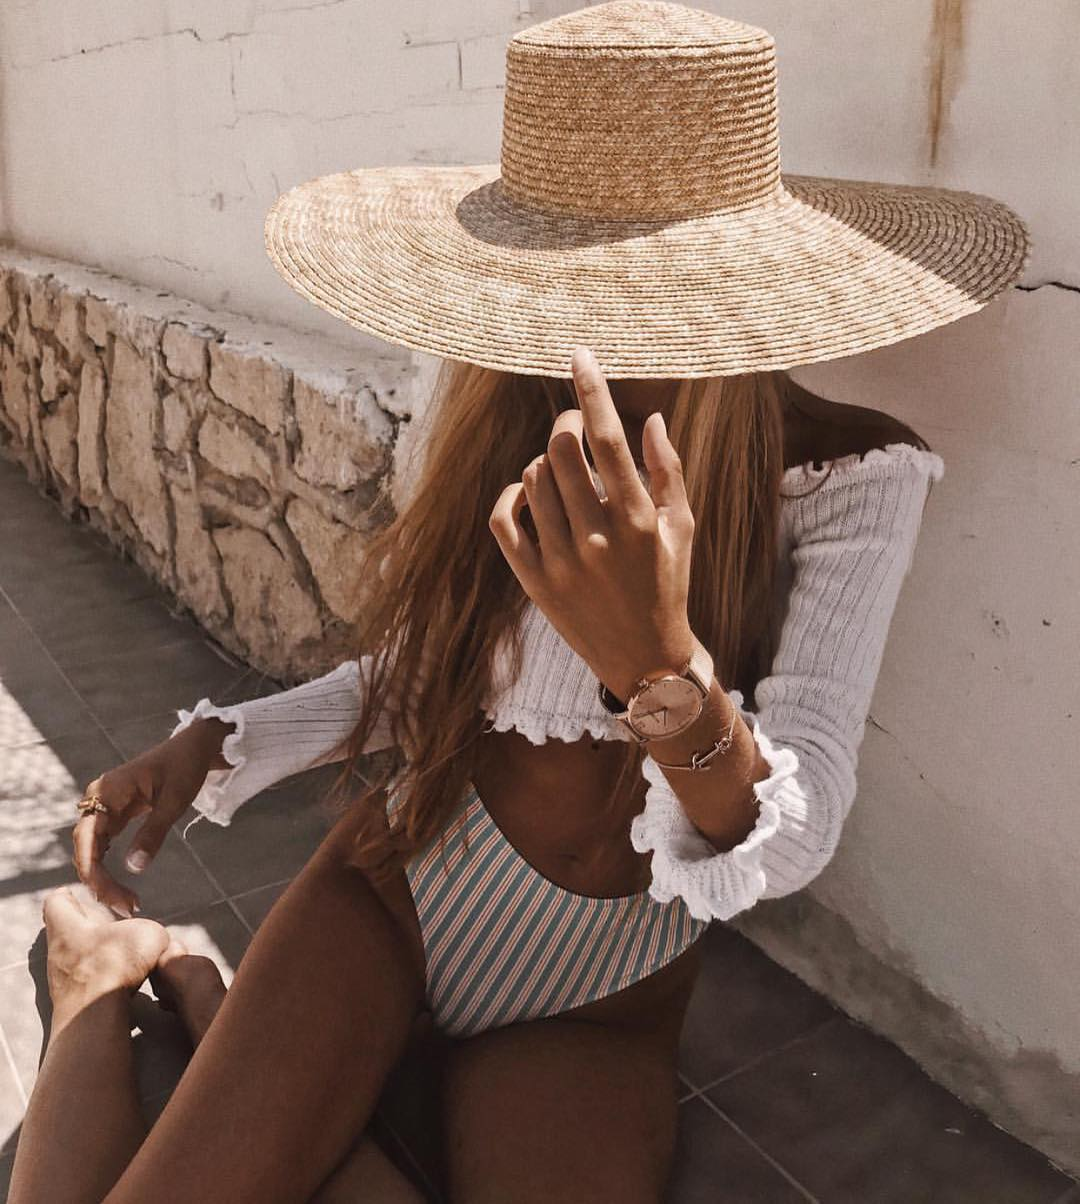 Long Sleeve White Crop Top And Striped Bikini Bottoms For Summer Getaway Vacation 2019